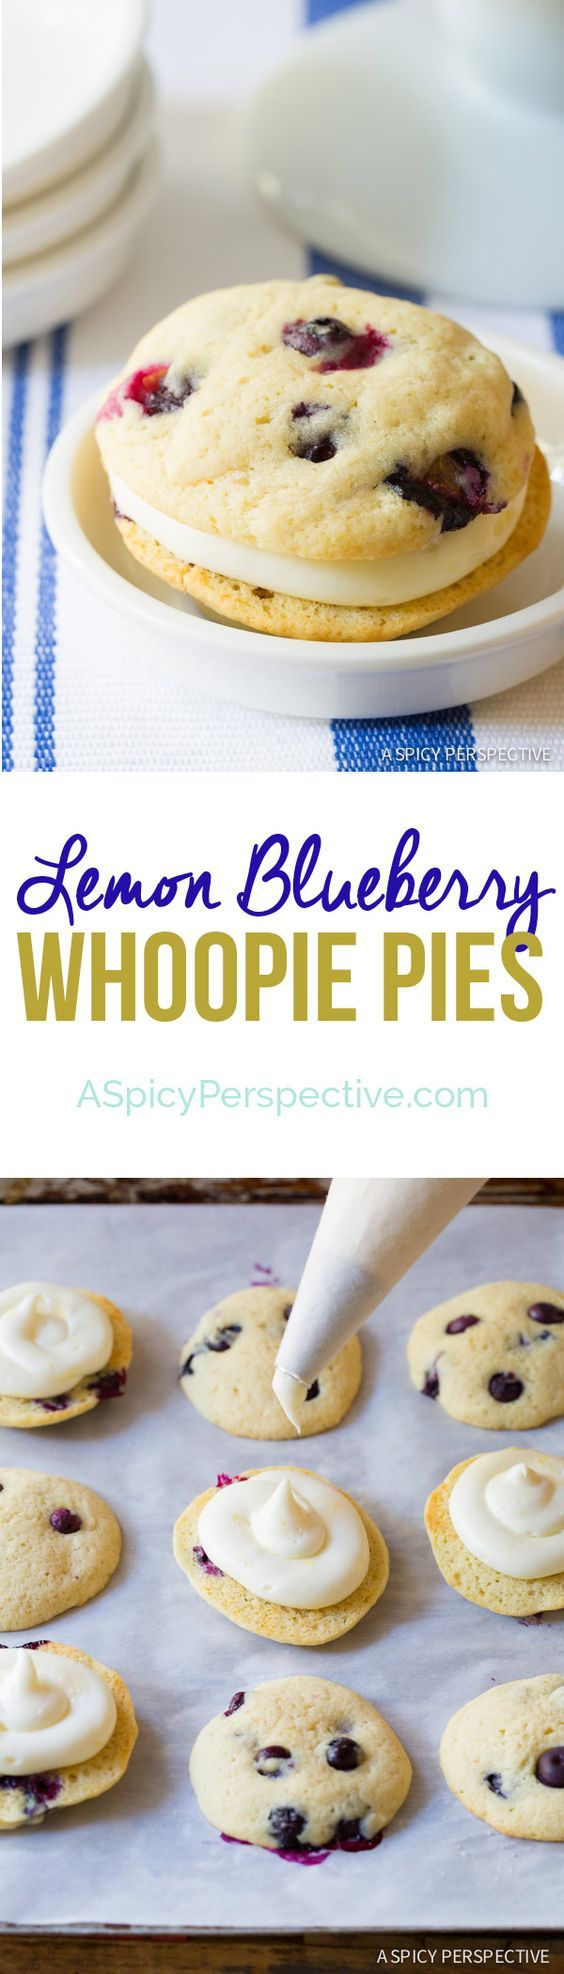 Soft and sumptuous Lemon Blueberry Whoopie Pie Recipe with tangy lemon filling. Lovely for any Spring celebration.